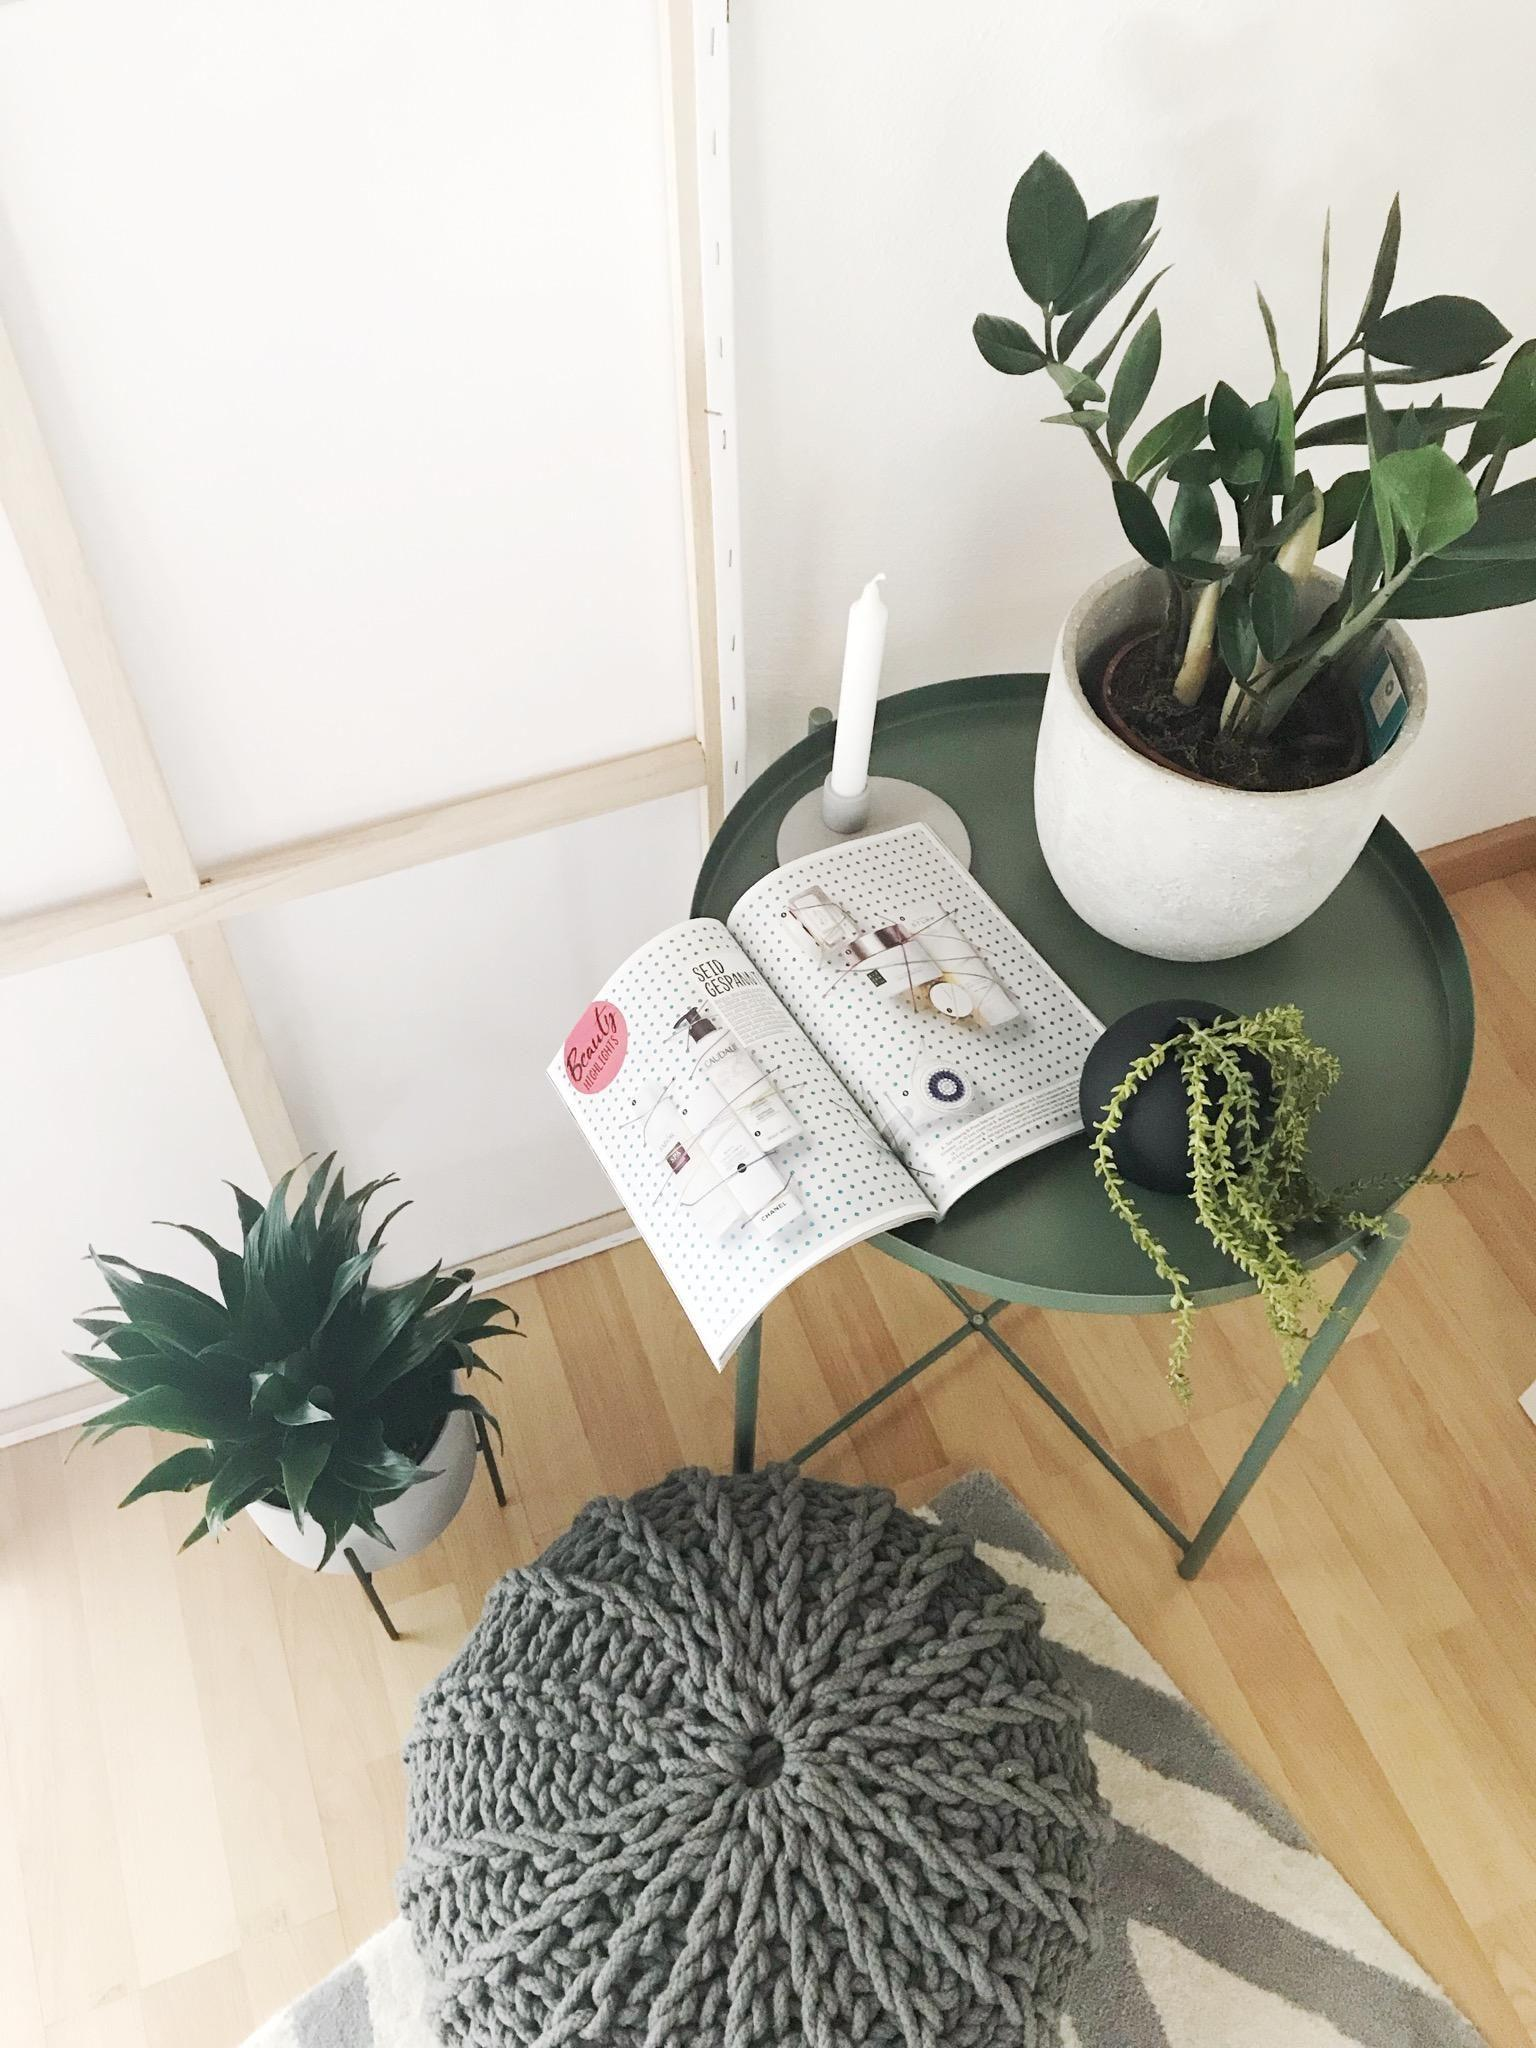 Happy Sunday! My little #urbanjungle #greenliving #livingroom #beistelltisch #skandi #wohnzimmer #grün #cosy #living